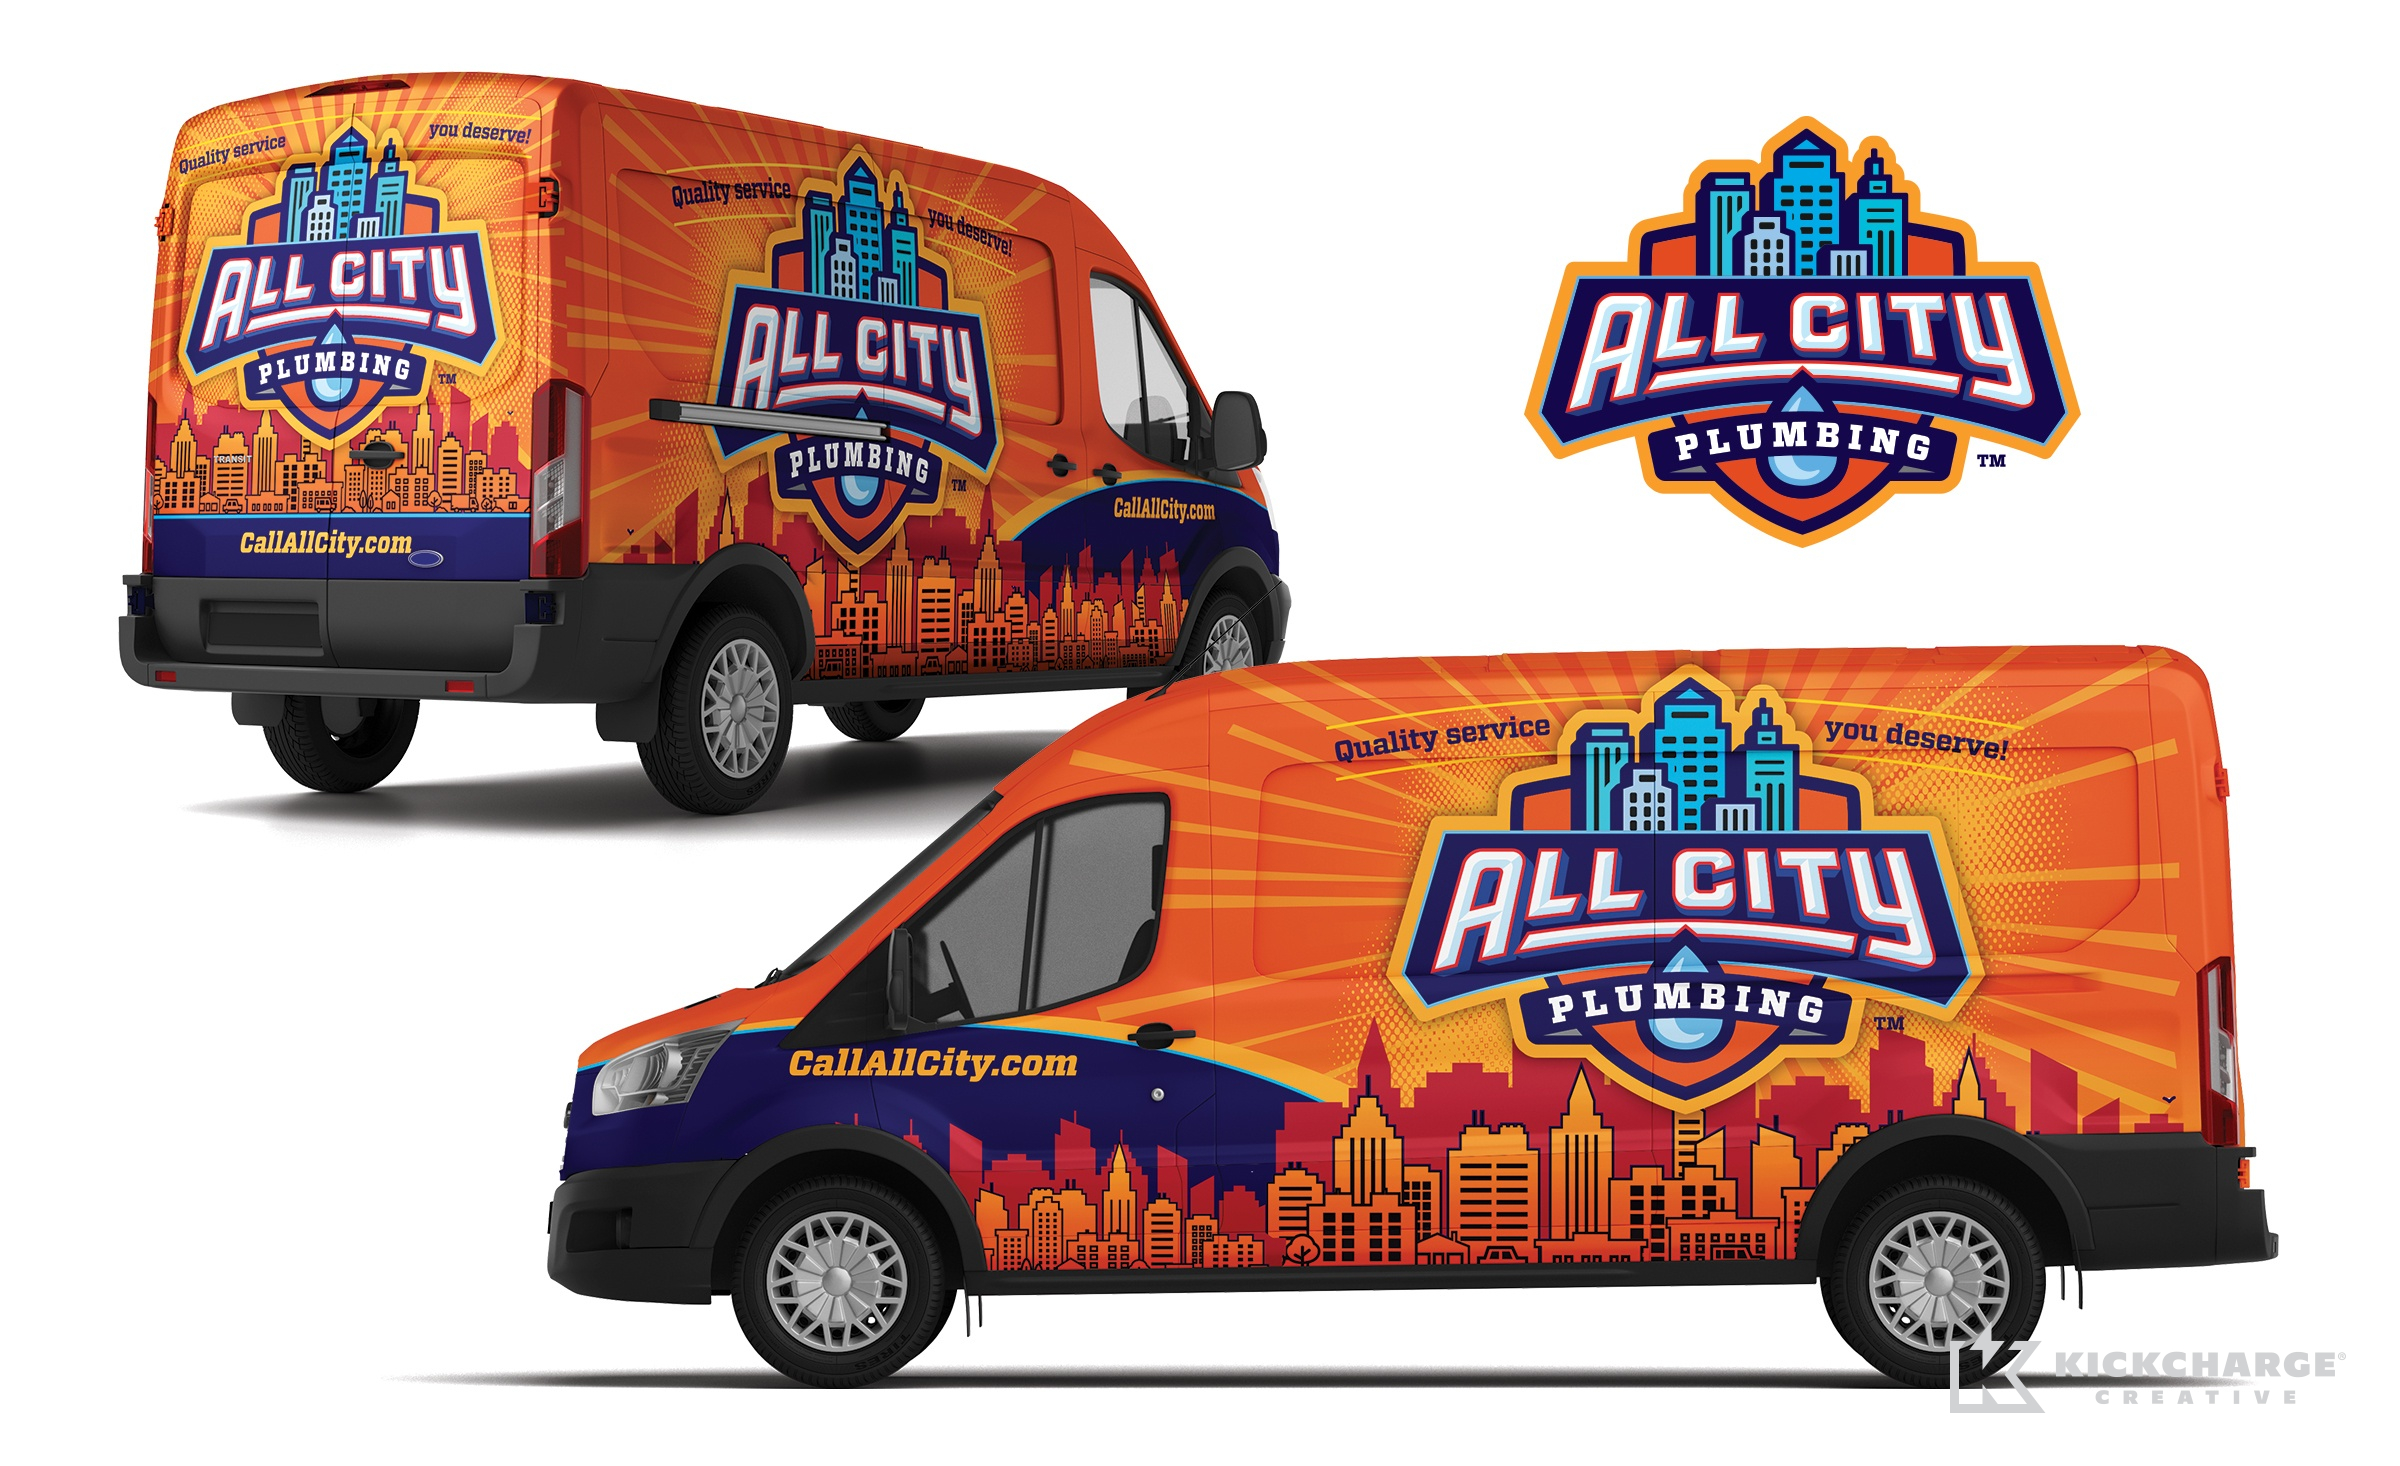 plumbing truck wrap for All City Plumbing